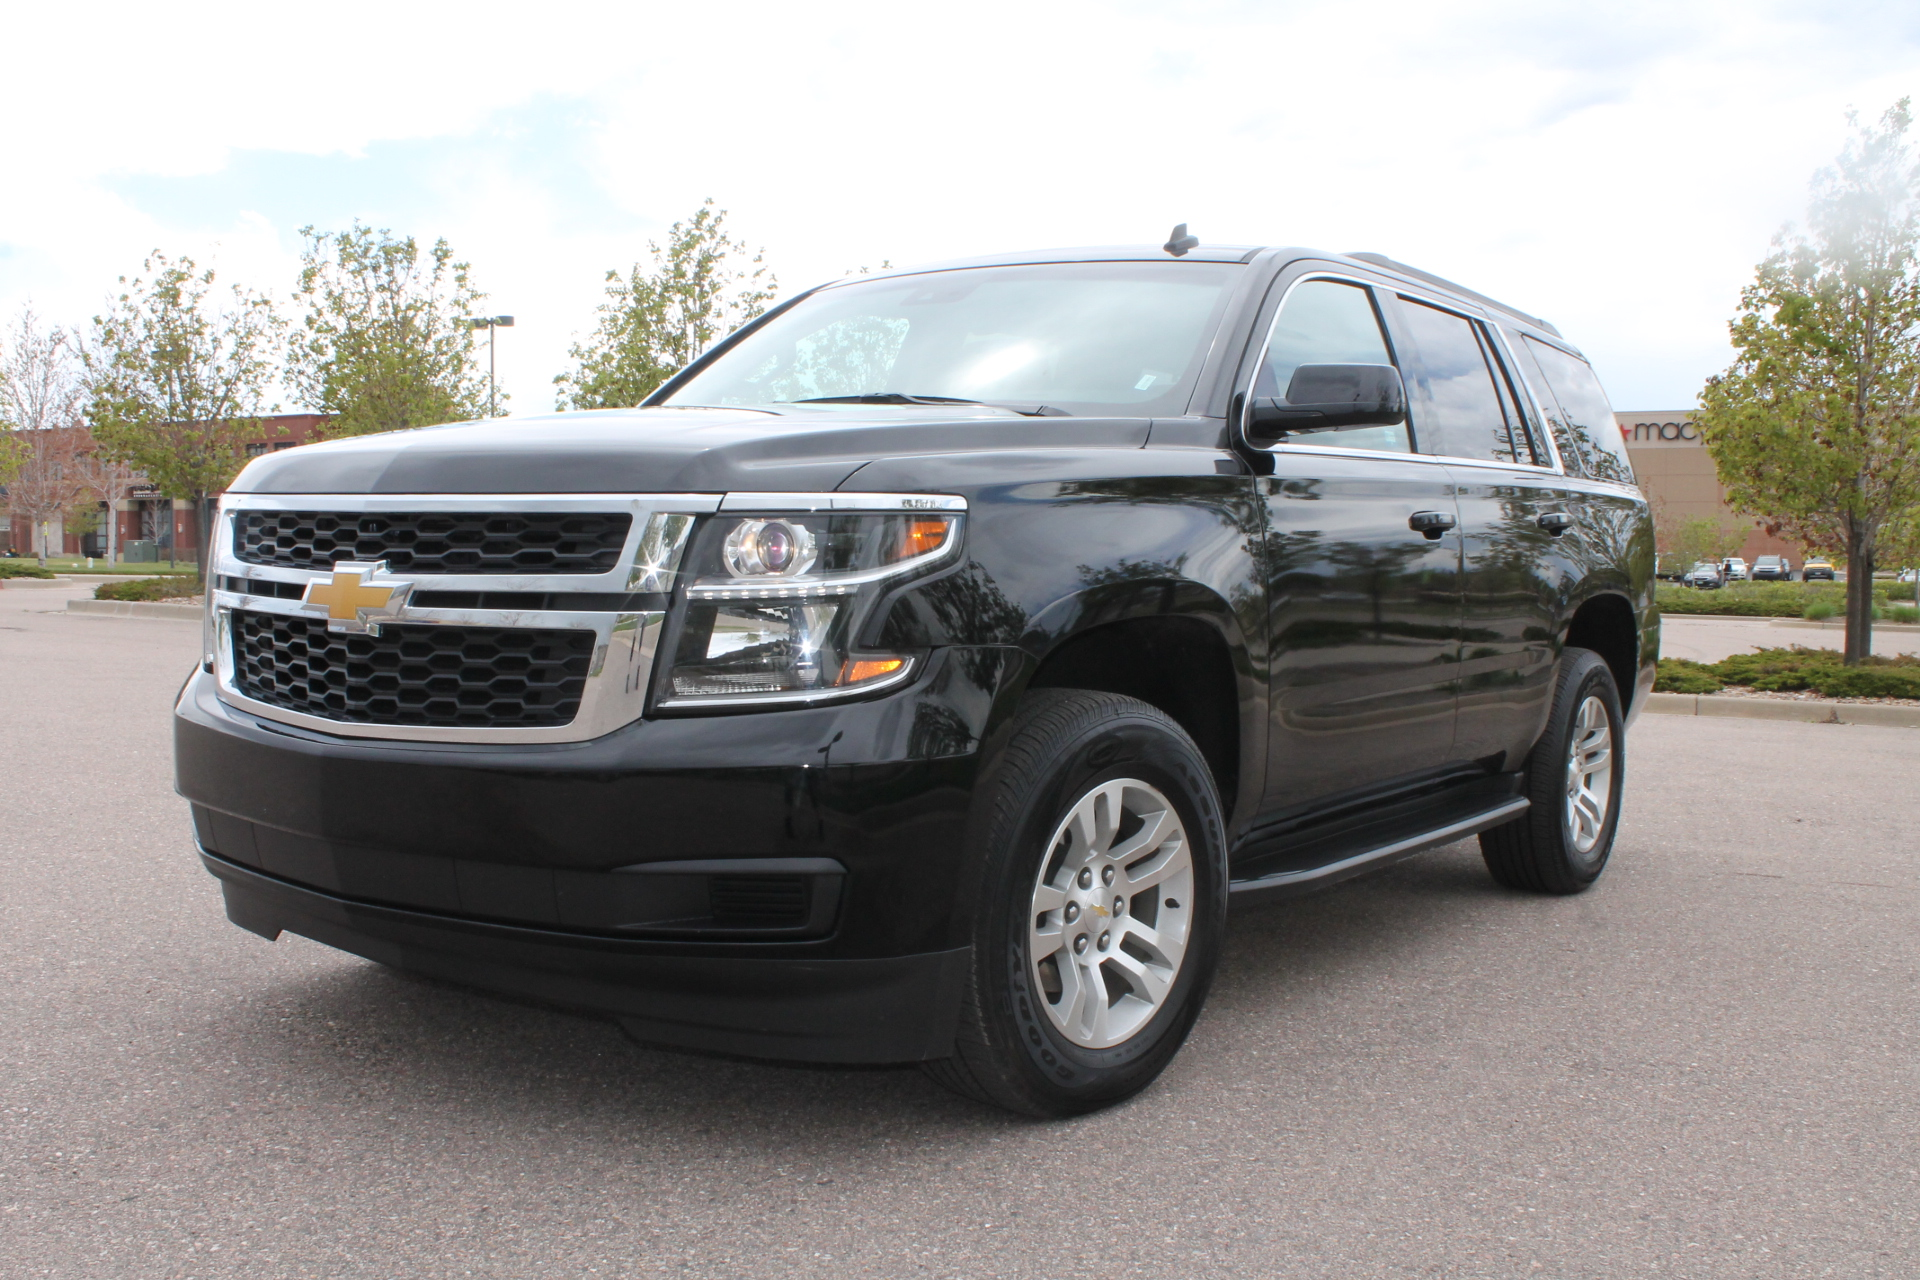 2015 chevrolet tahoe lt blk on blk nav for sale sold collision repair denver auto parts. Black Bedroom Furniture Sets. Home Design Ideas